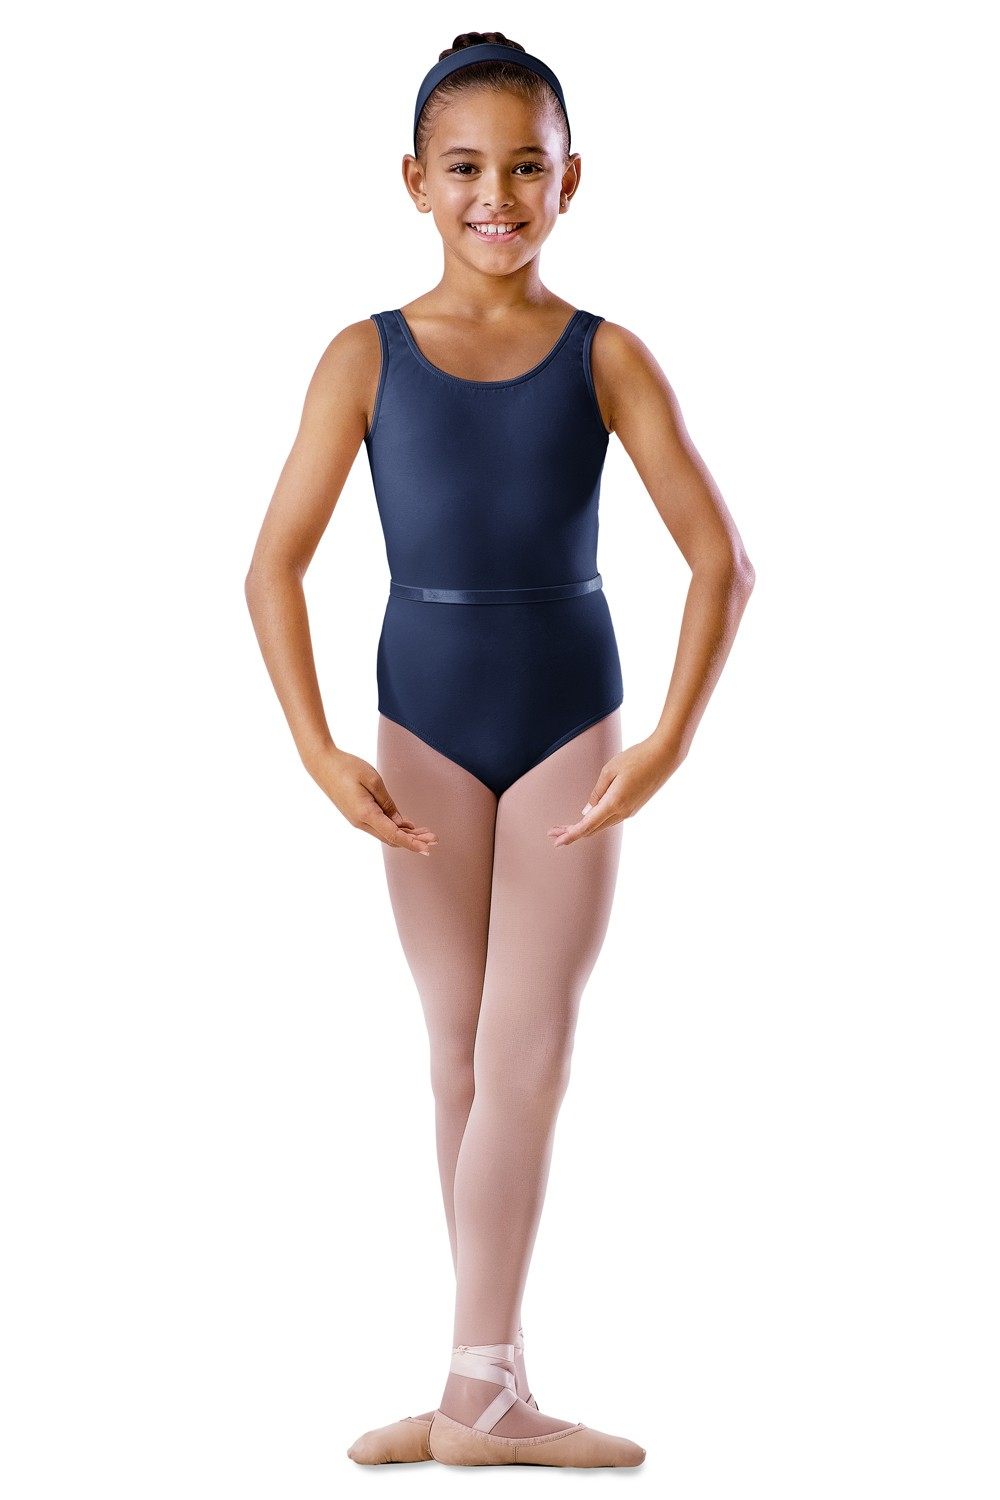 Childrens Round Neck Tank Leotard With Belt Children's Dance Uniforms